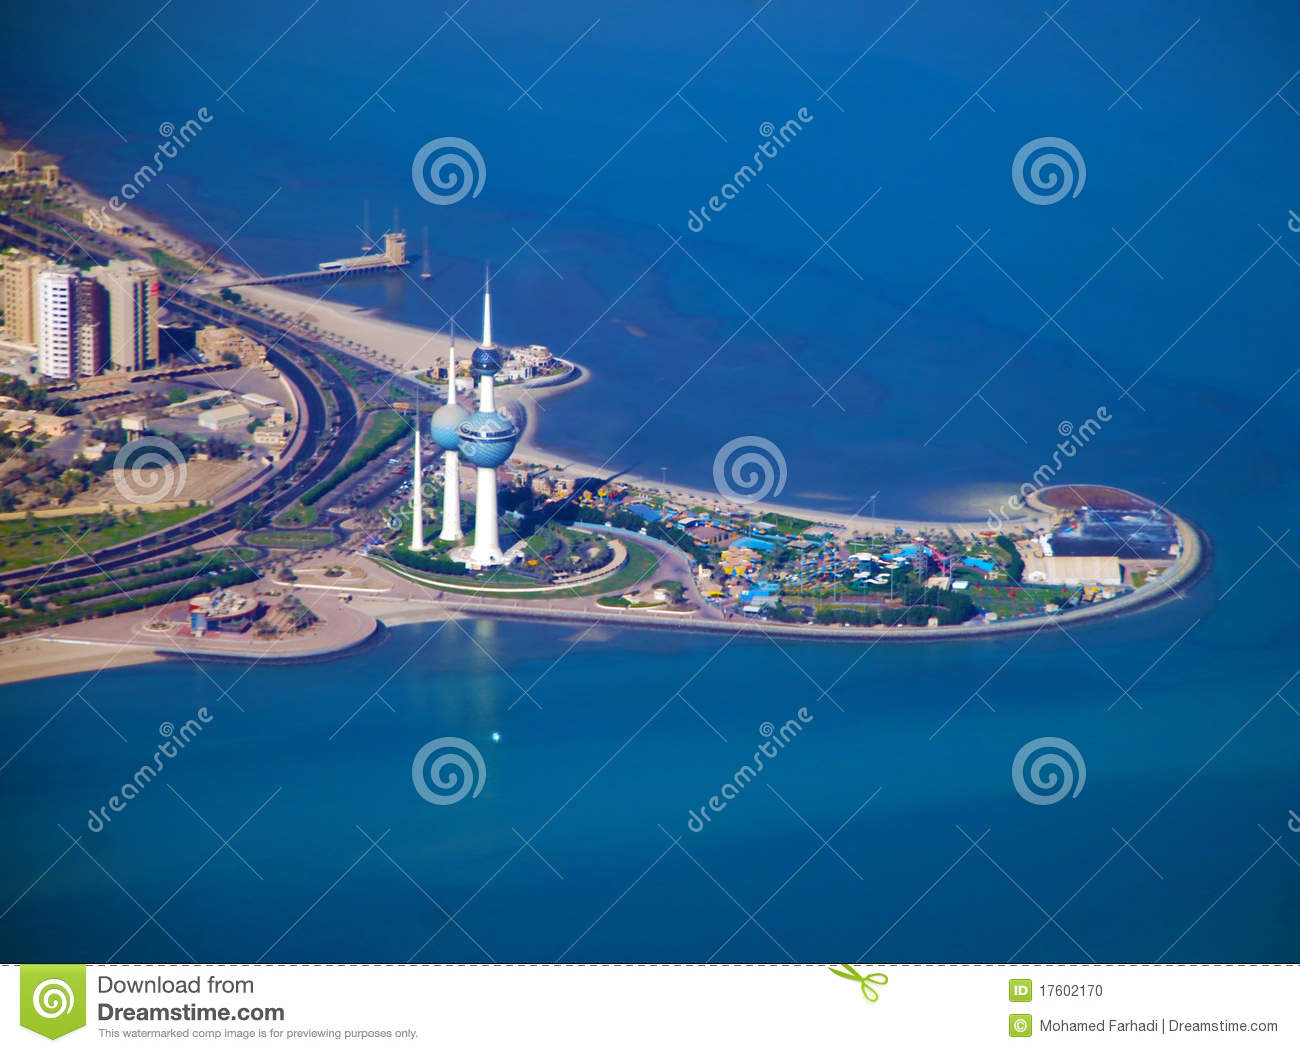 Stock Photo Kuwait Towers Image17602170 on living room entrance arch design